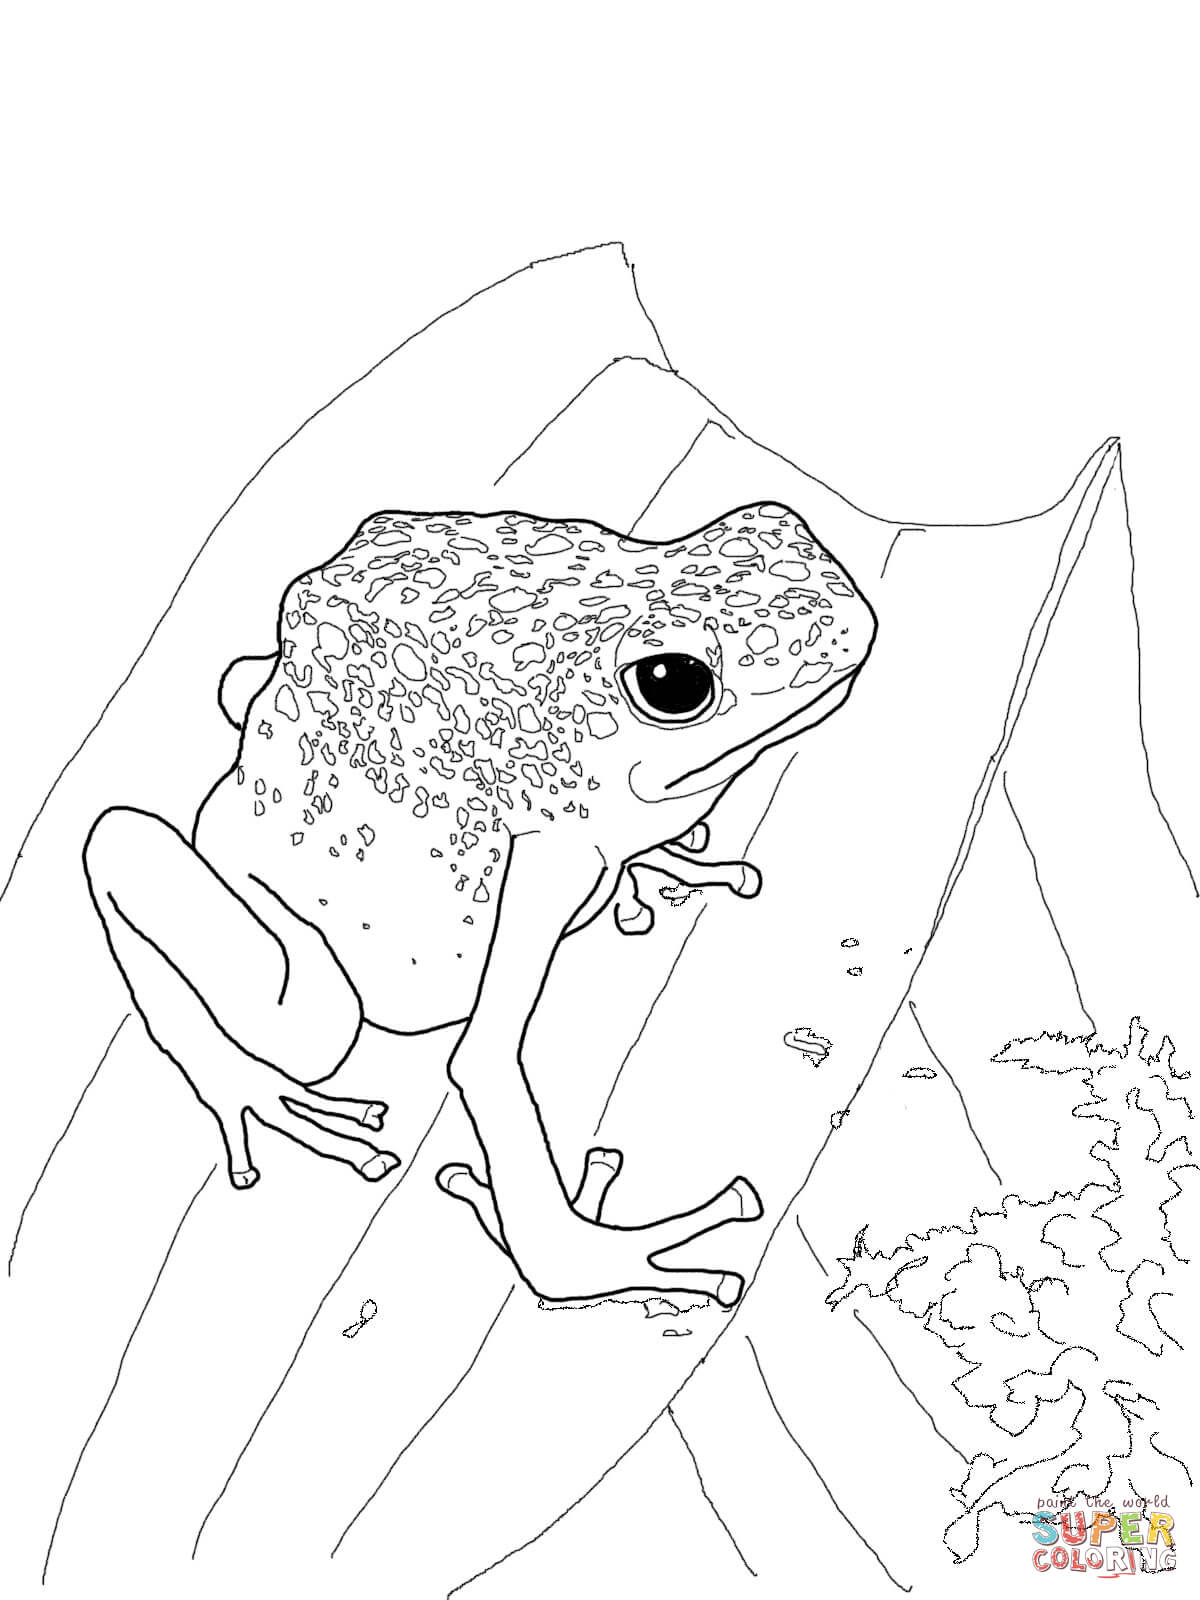 Poison dart frog coloring page coloring home, fun coloring pages